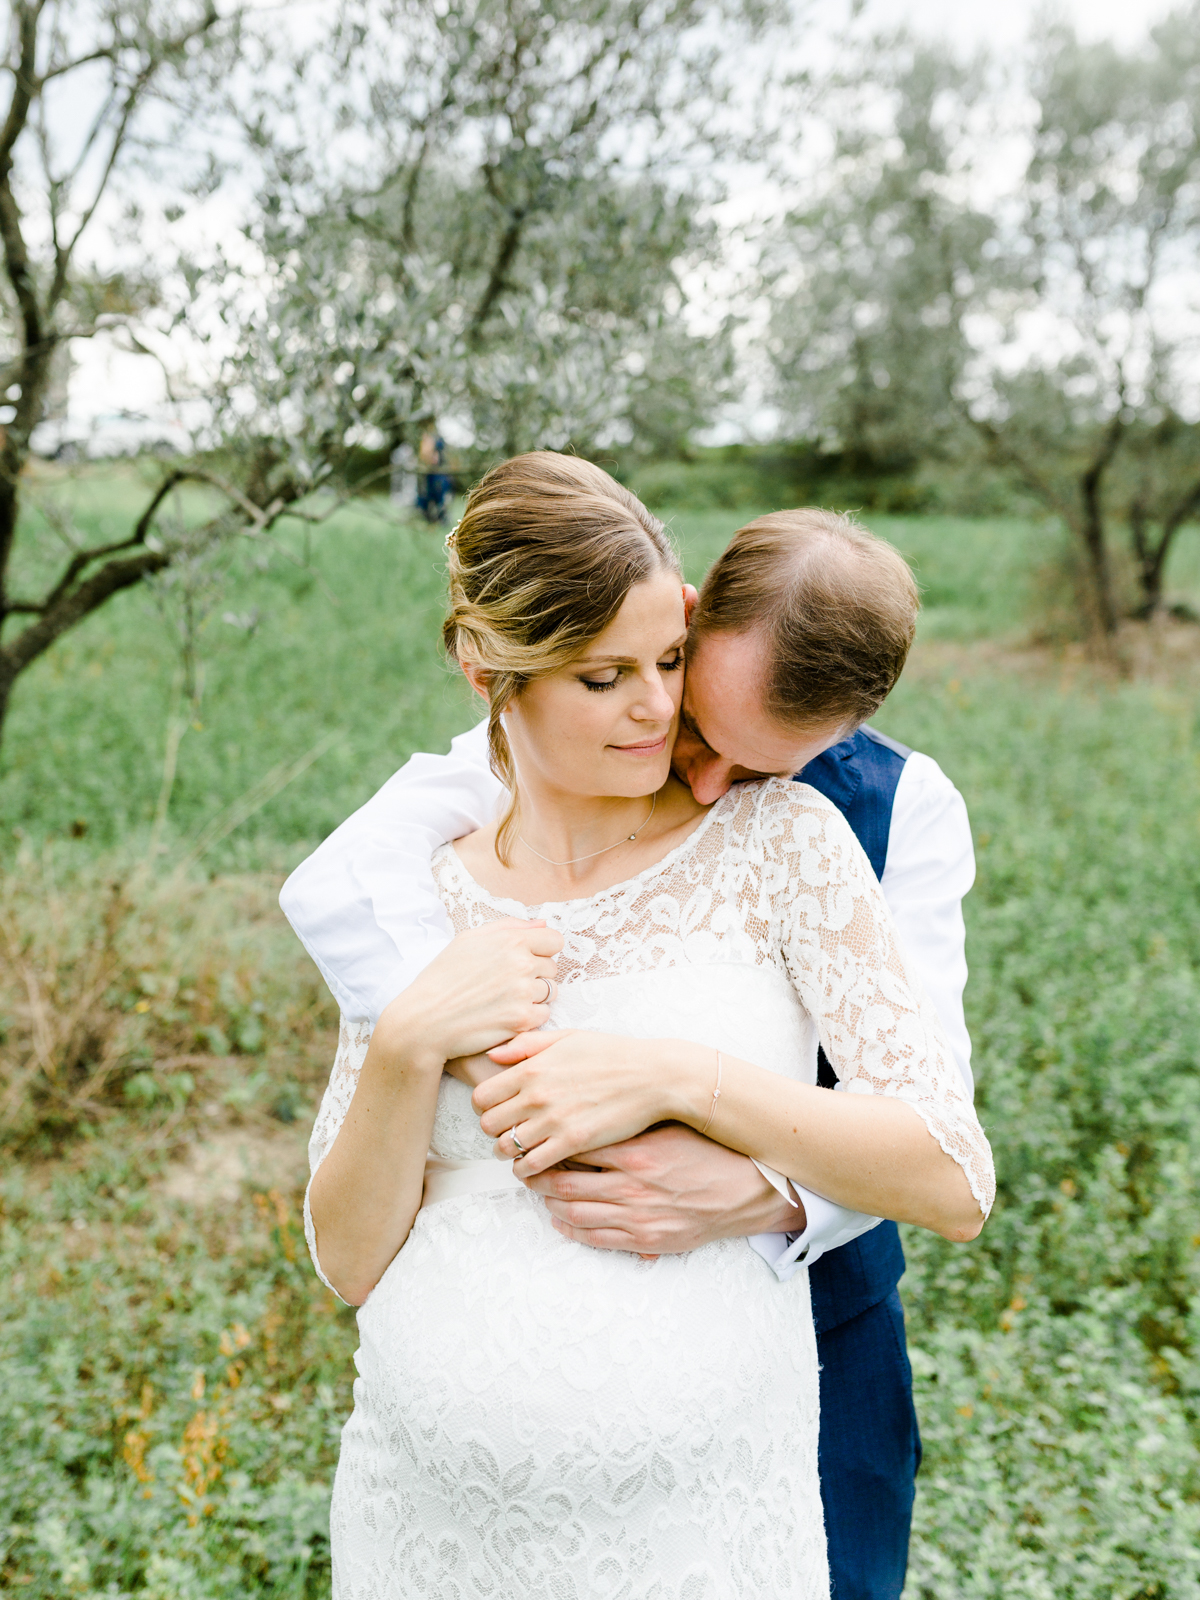 Romy_Alfons_Destination_Wedding_Tuscany_Toskana_Italy_me_him_photography-356